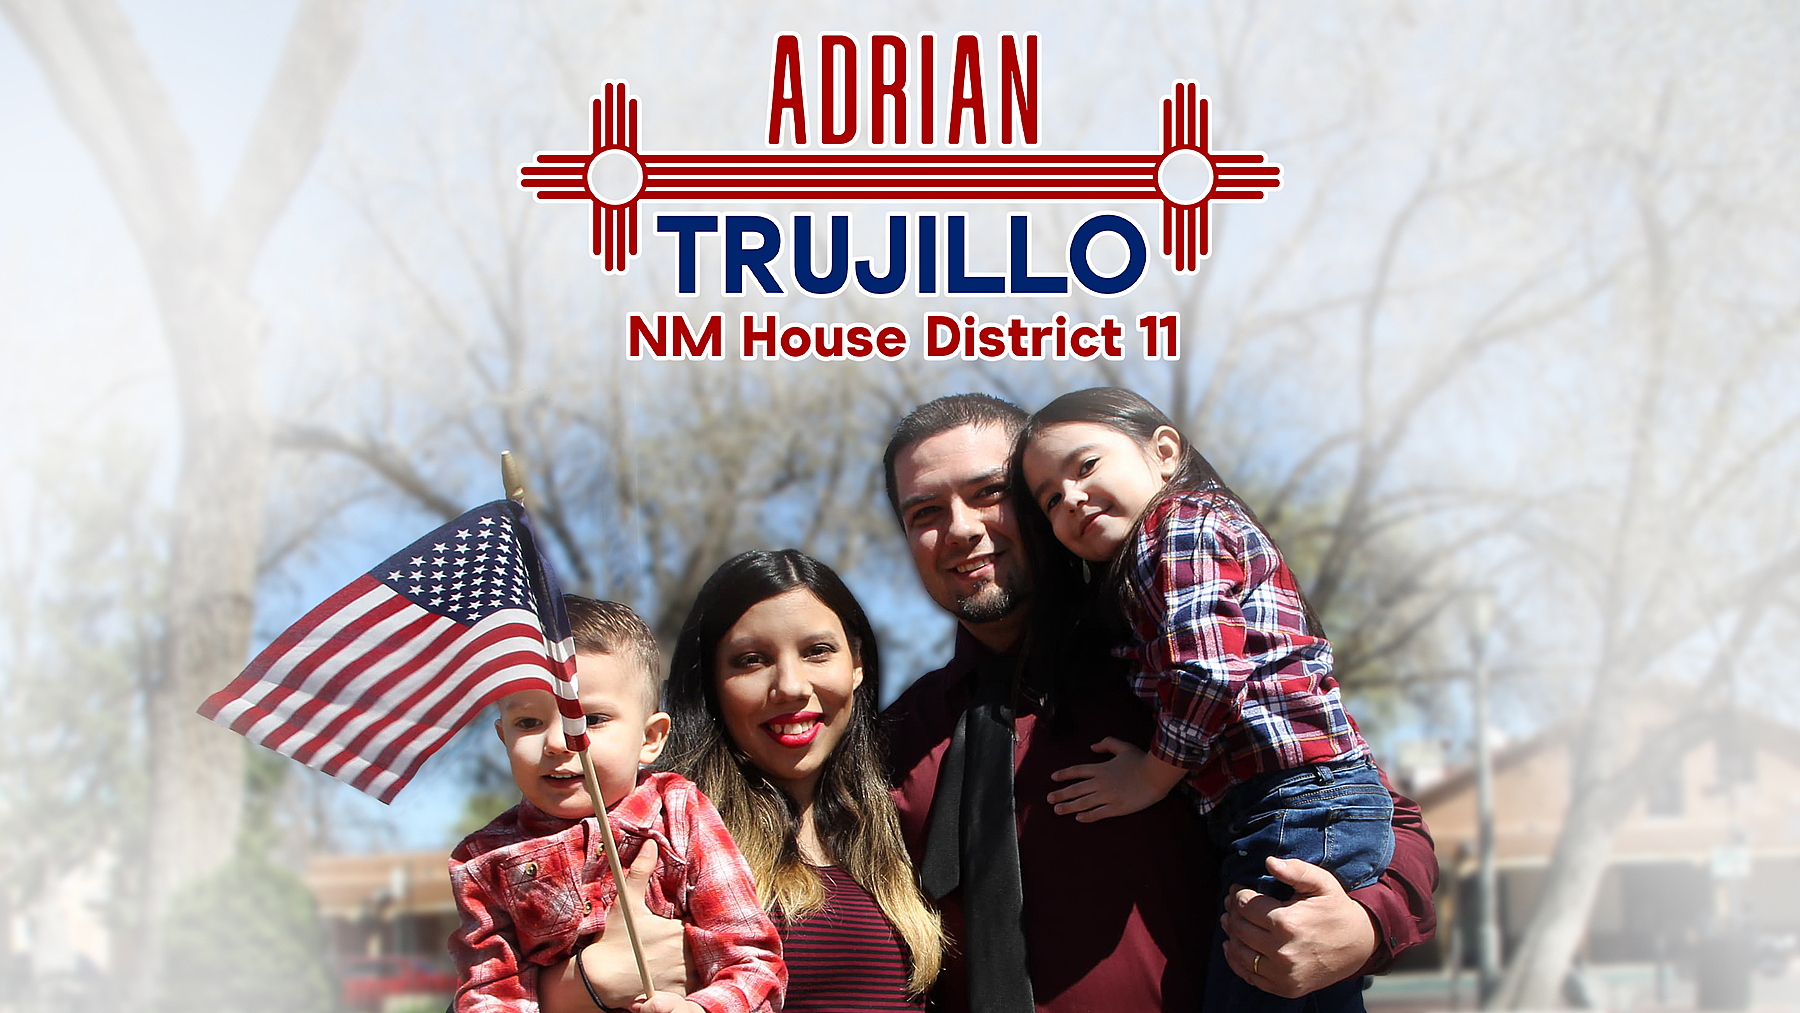 Adrian Trujillo Election 2020: Homepage